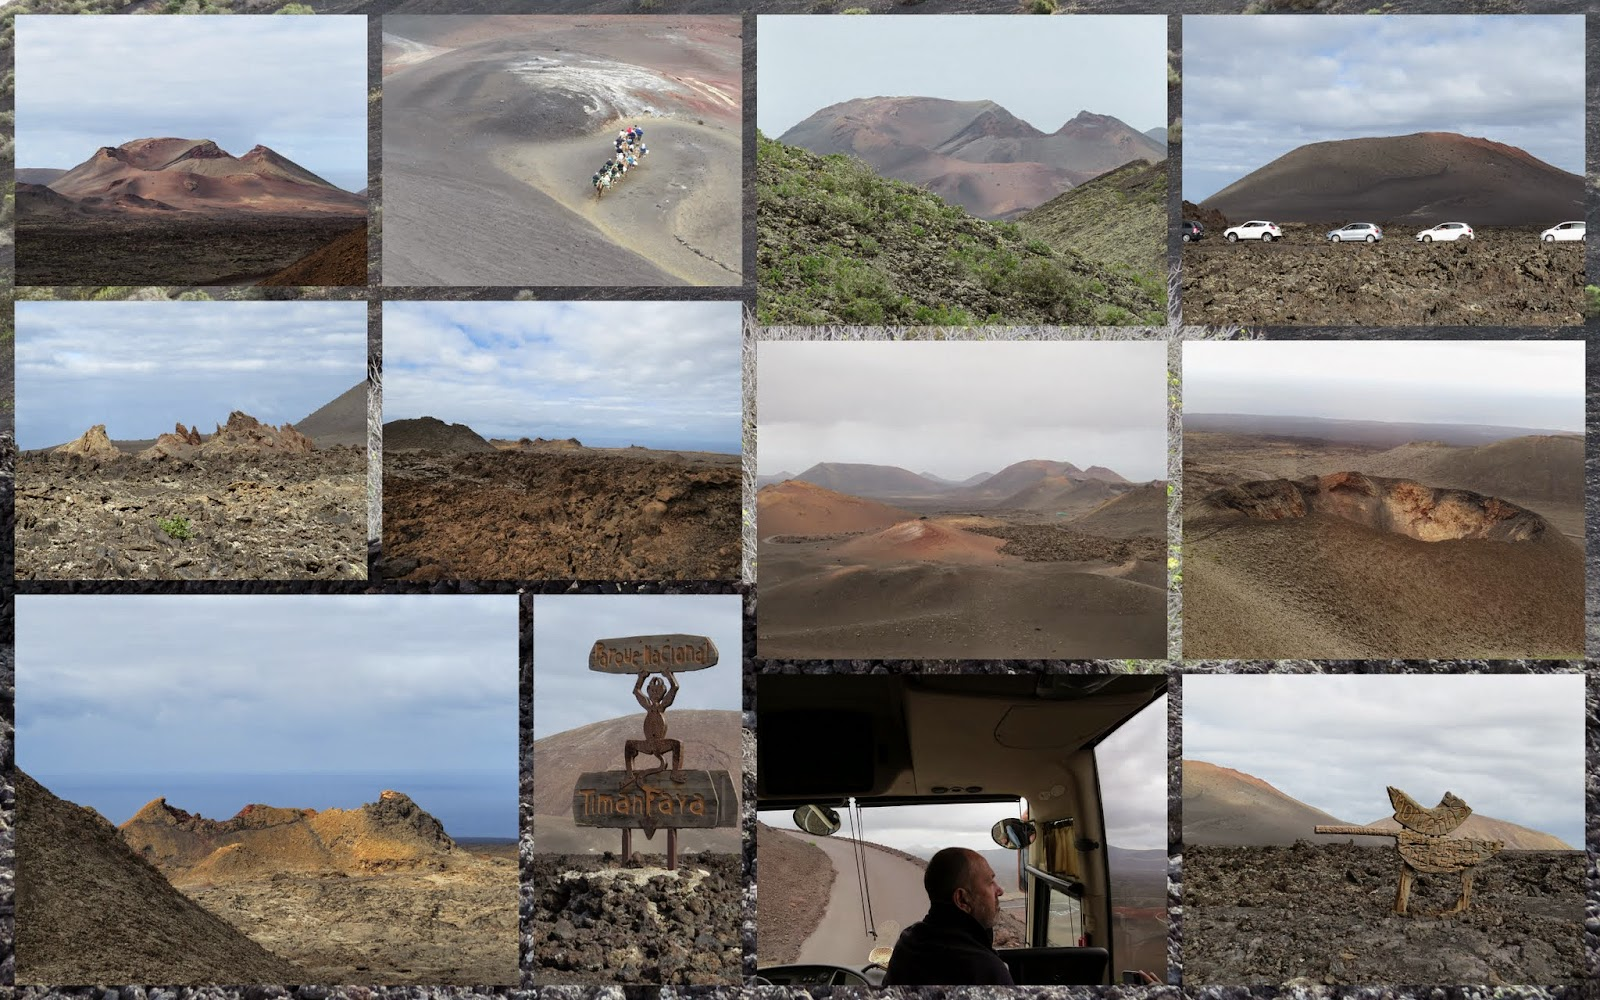 What to do in Lanzarote in January: Timanfaya National Park in Lanzarote